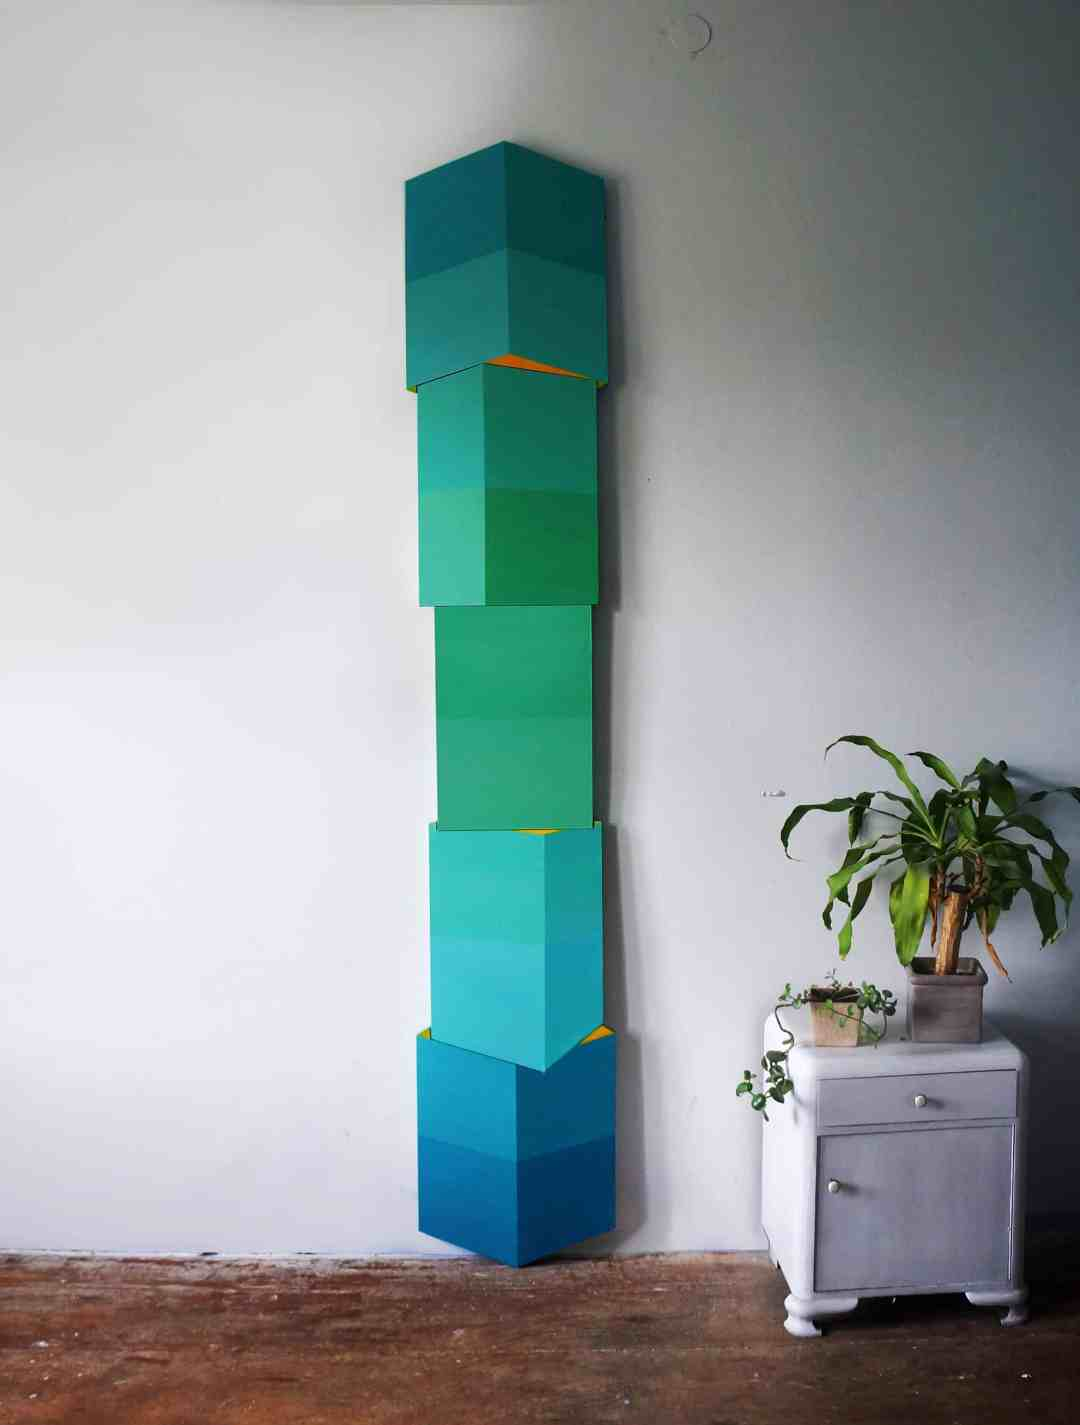 Karolina Balcer, Skyscraper, 5 stretchers, acrylic on canvas. H: 250cm, 2017